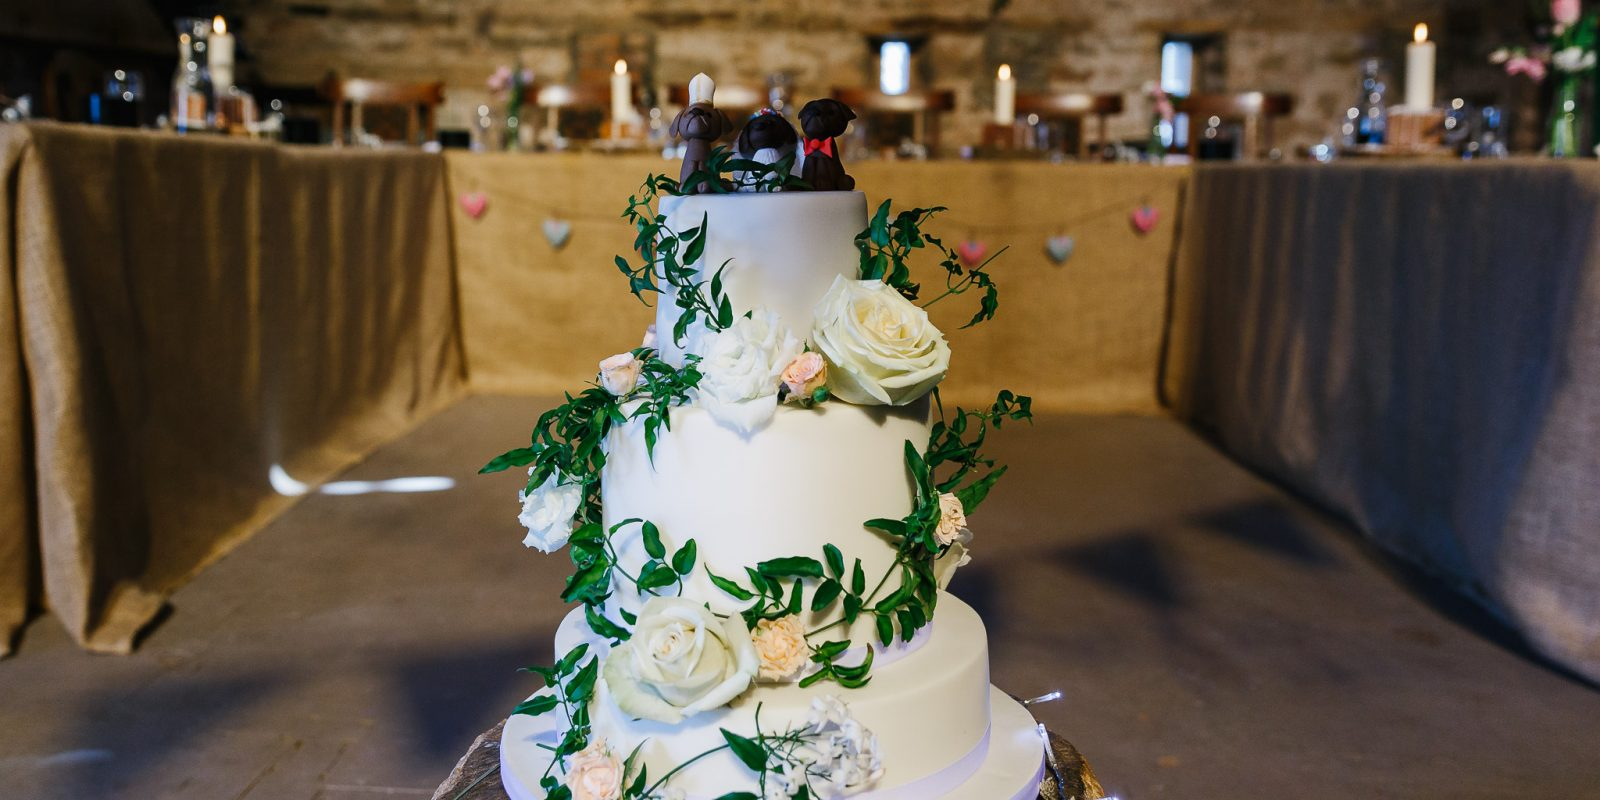 Lyde Court Wedding cake